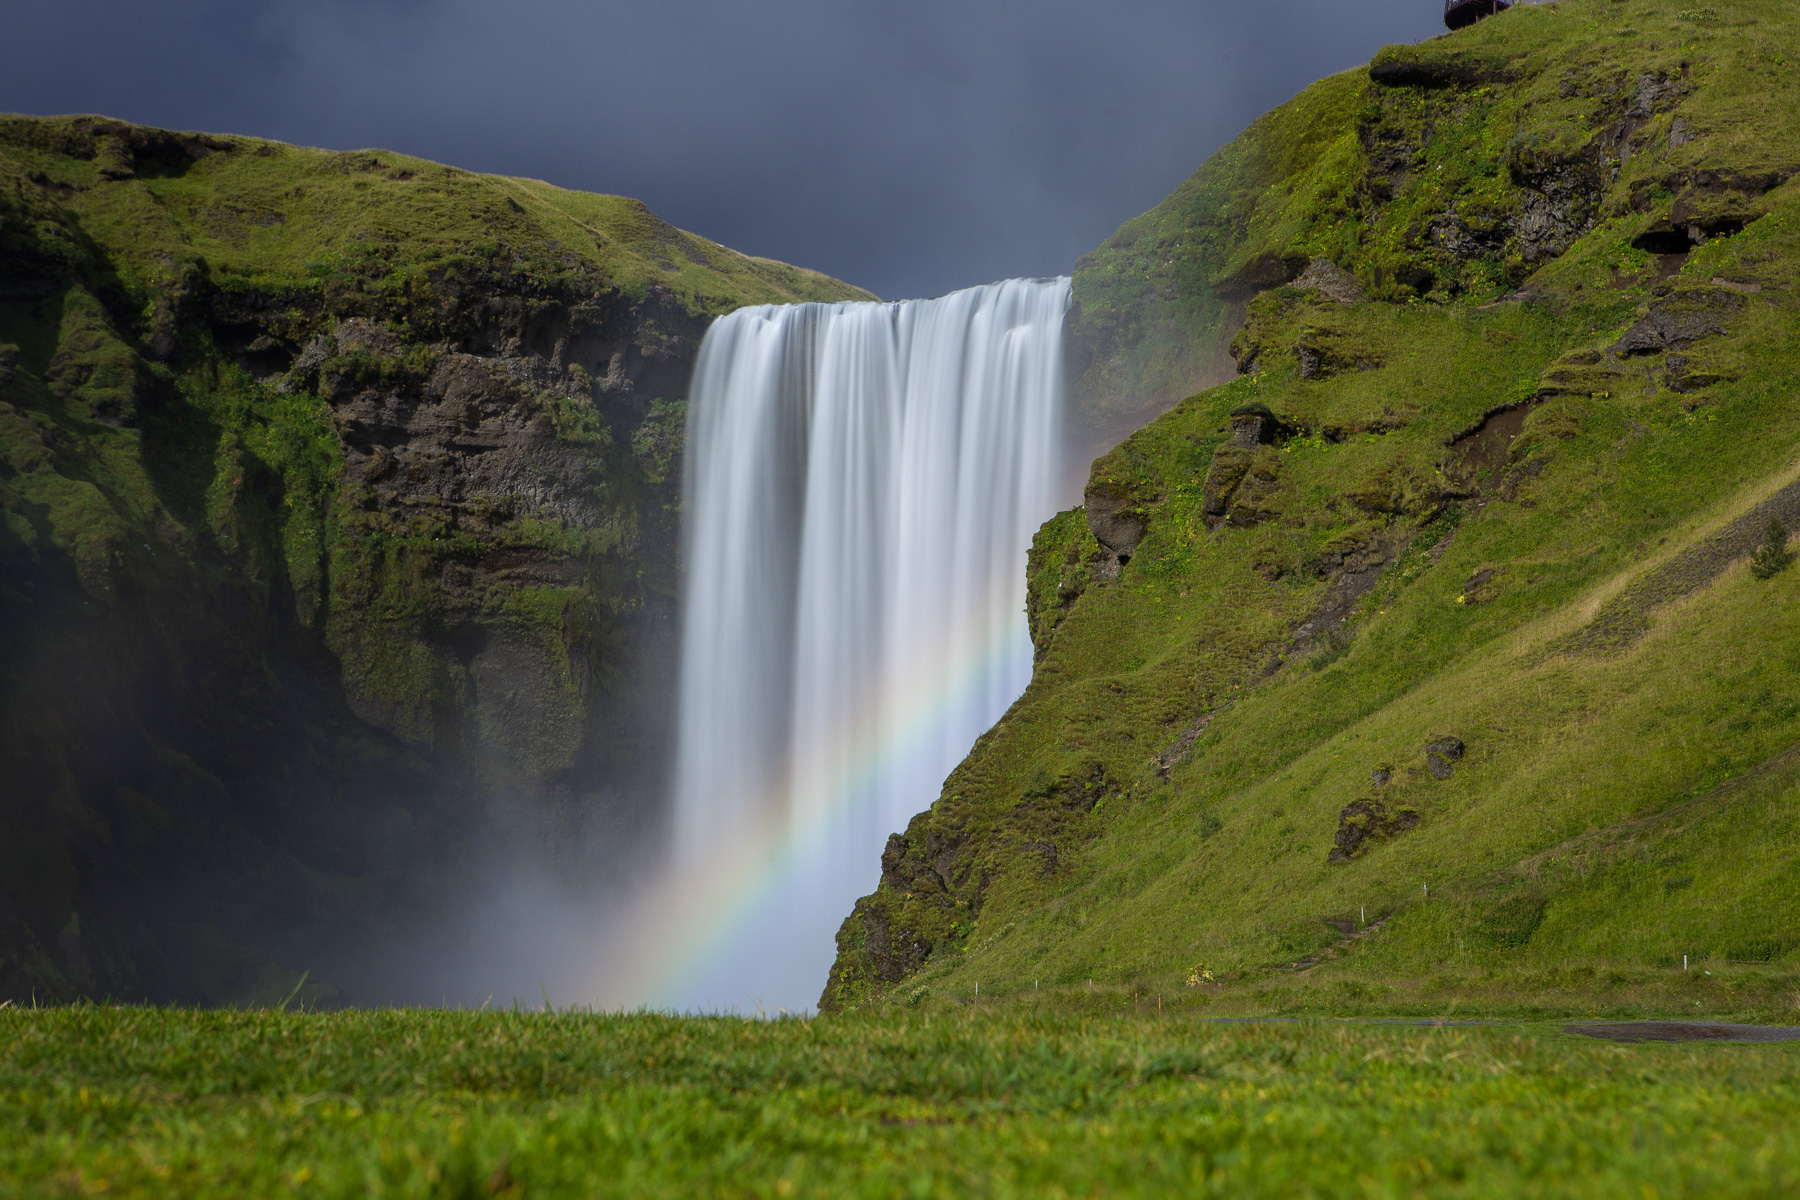 Long Exposure of Skogafoss waterfall with rainbow in Iceland.